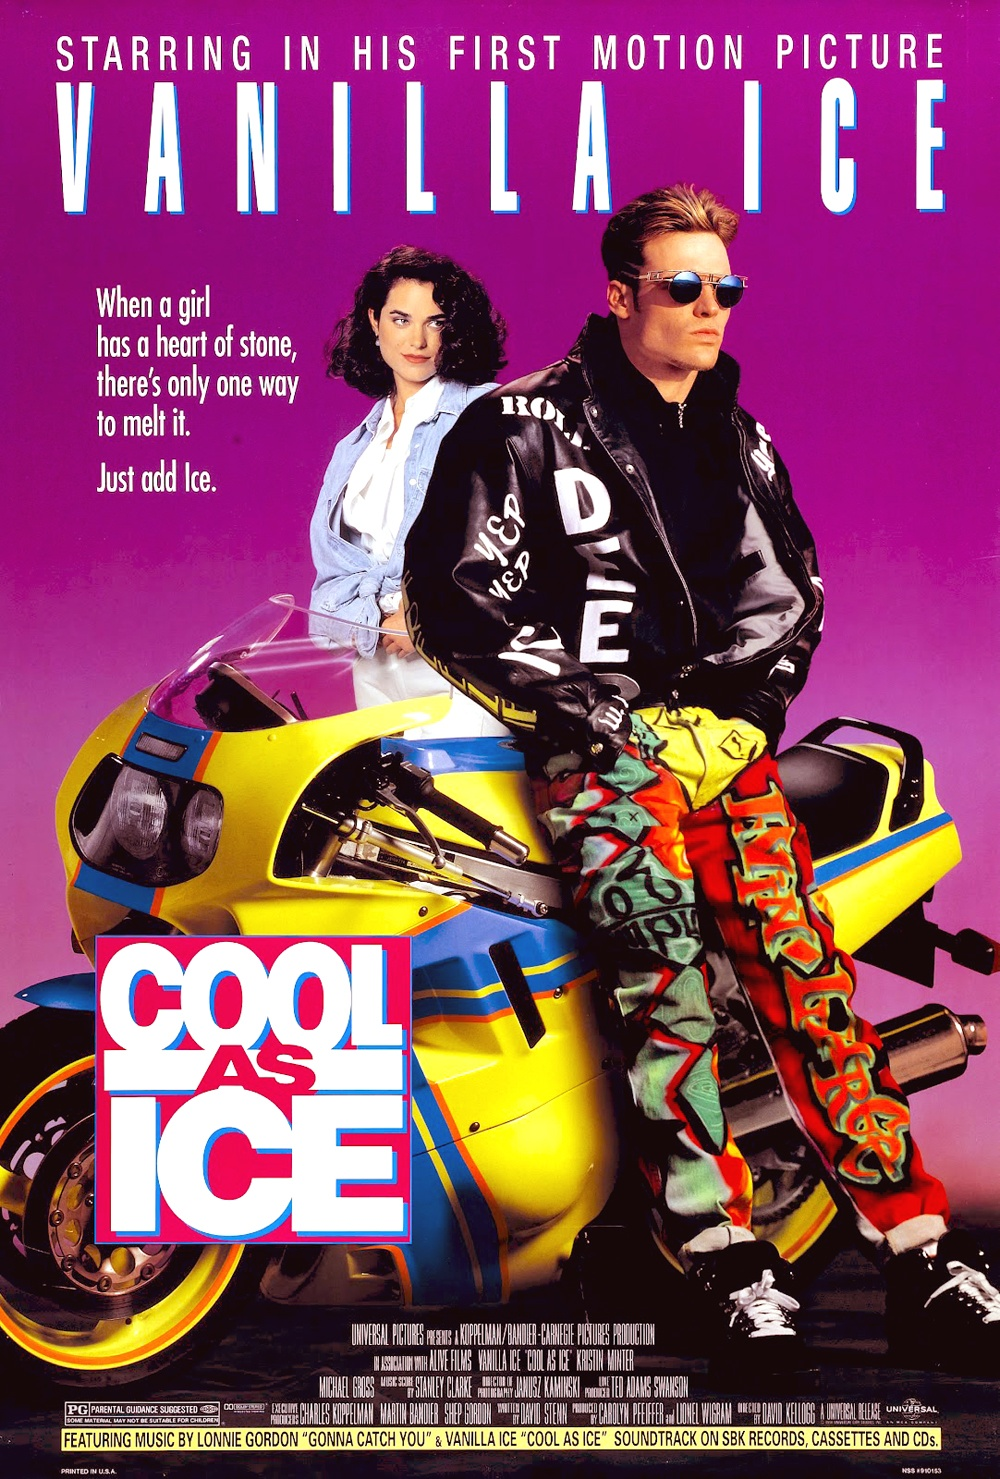 Movie poster for 'Cool As Ice' by Vanilla Ice